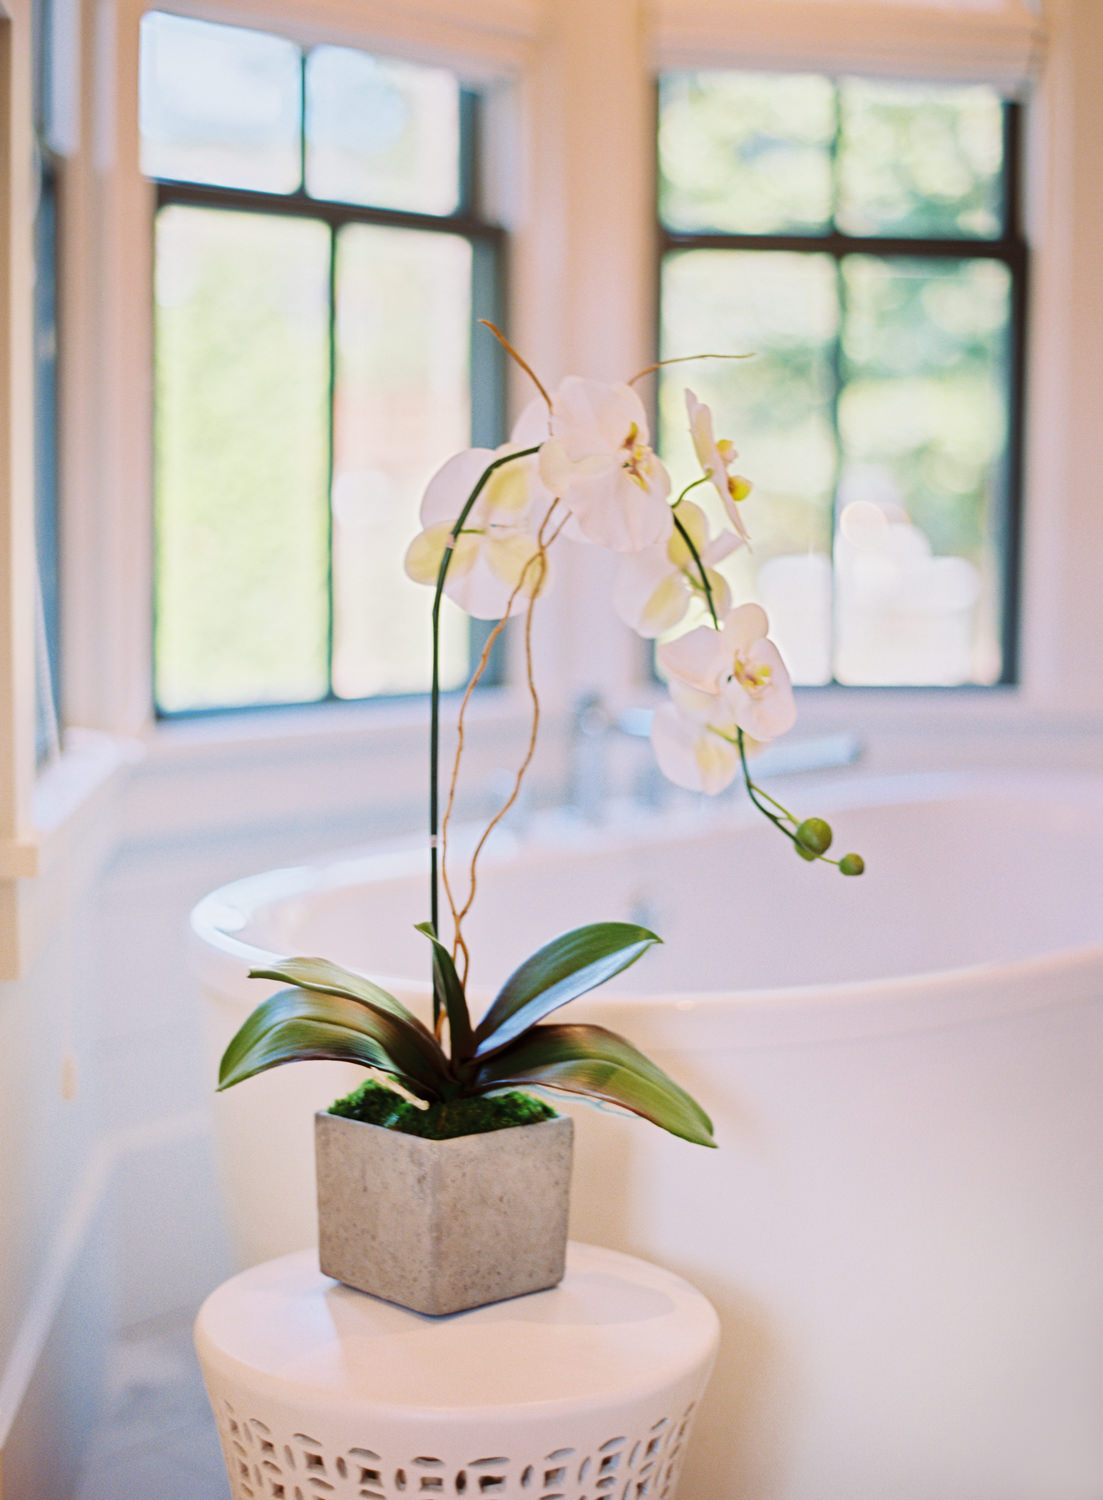 cottrell_photography_interiors-008